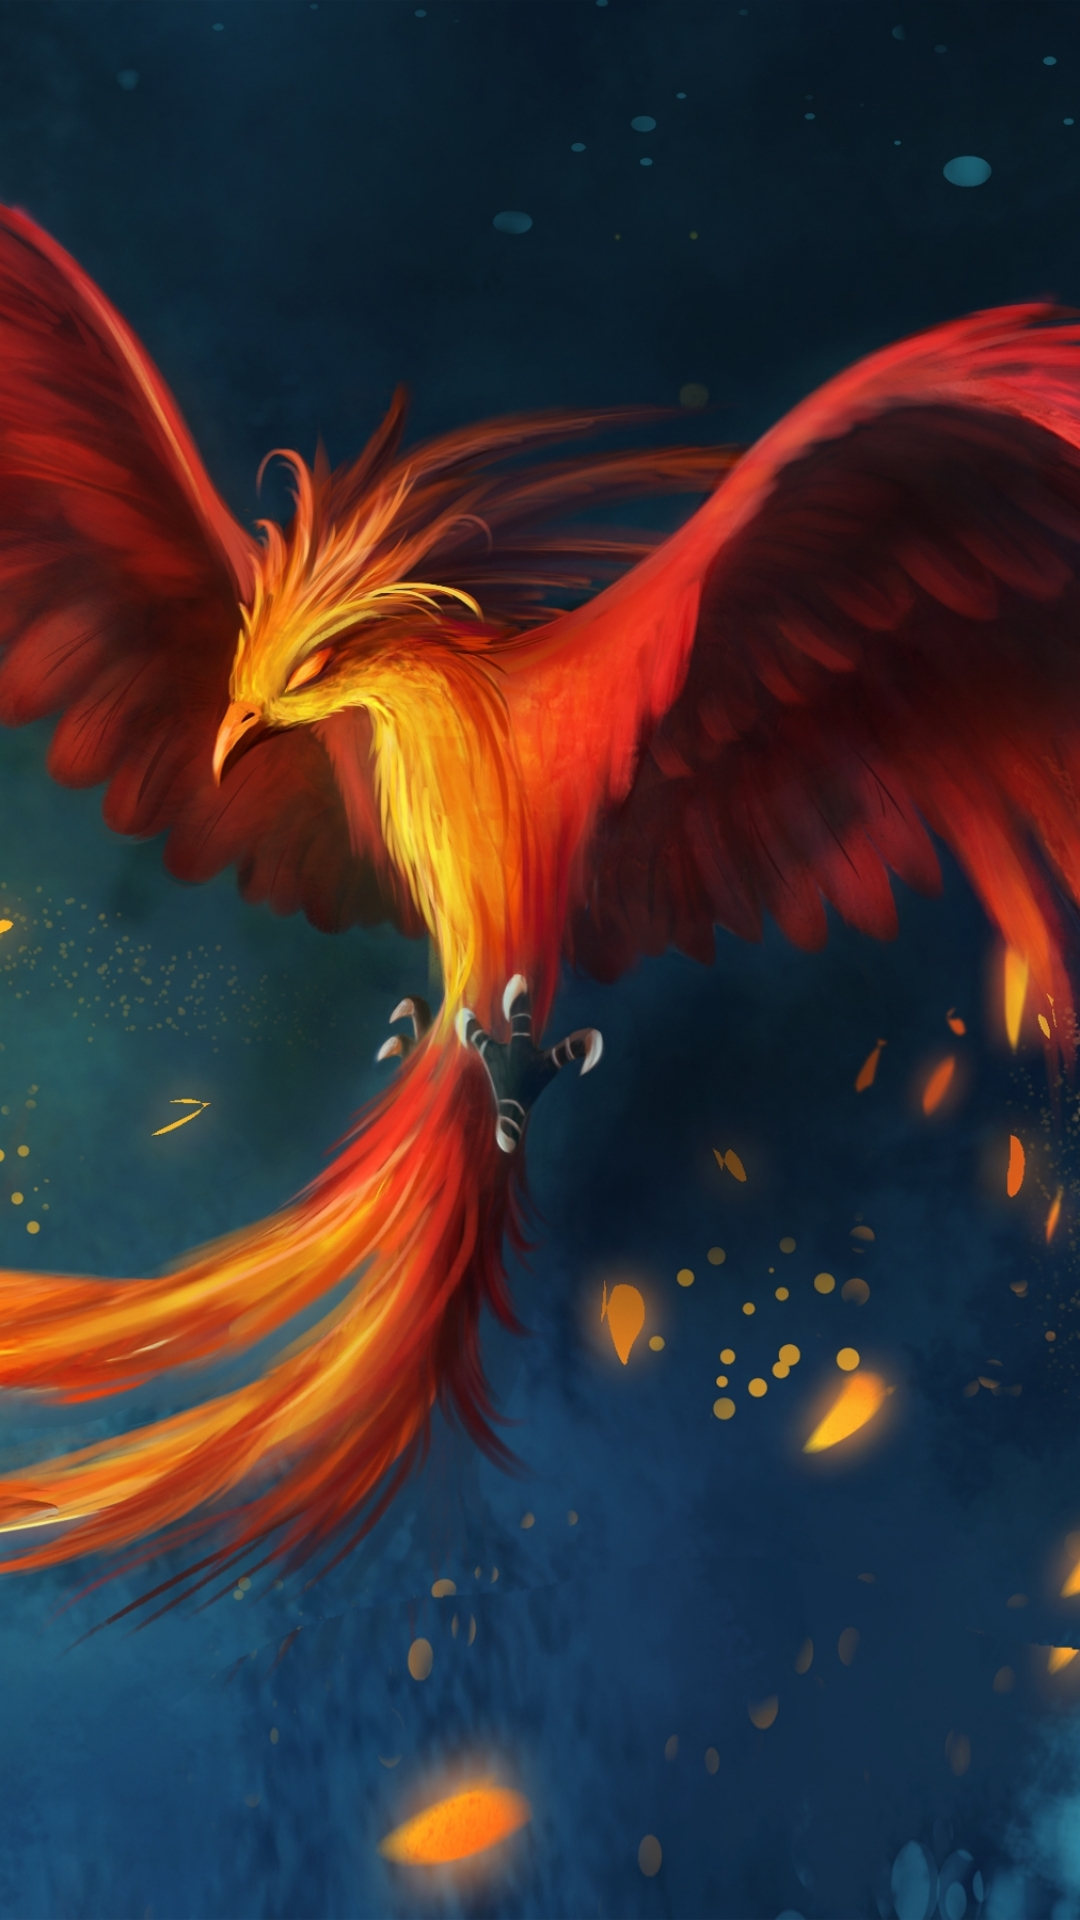 Phoenix Wallpaper - Android Apps on Google Play